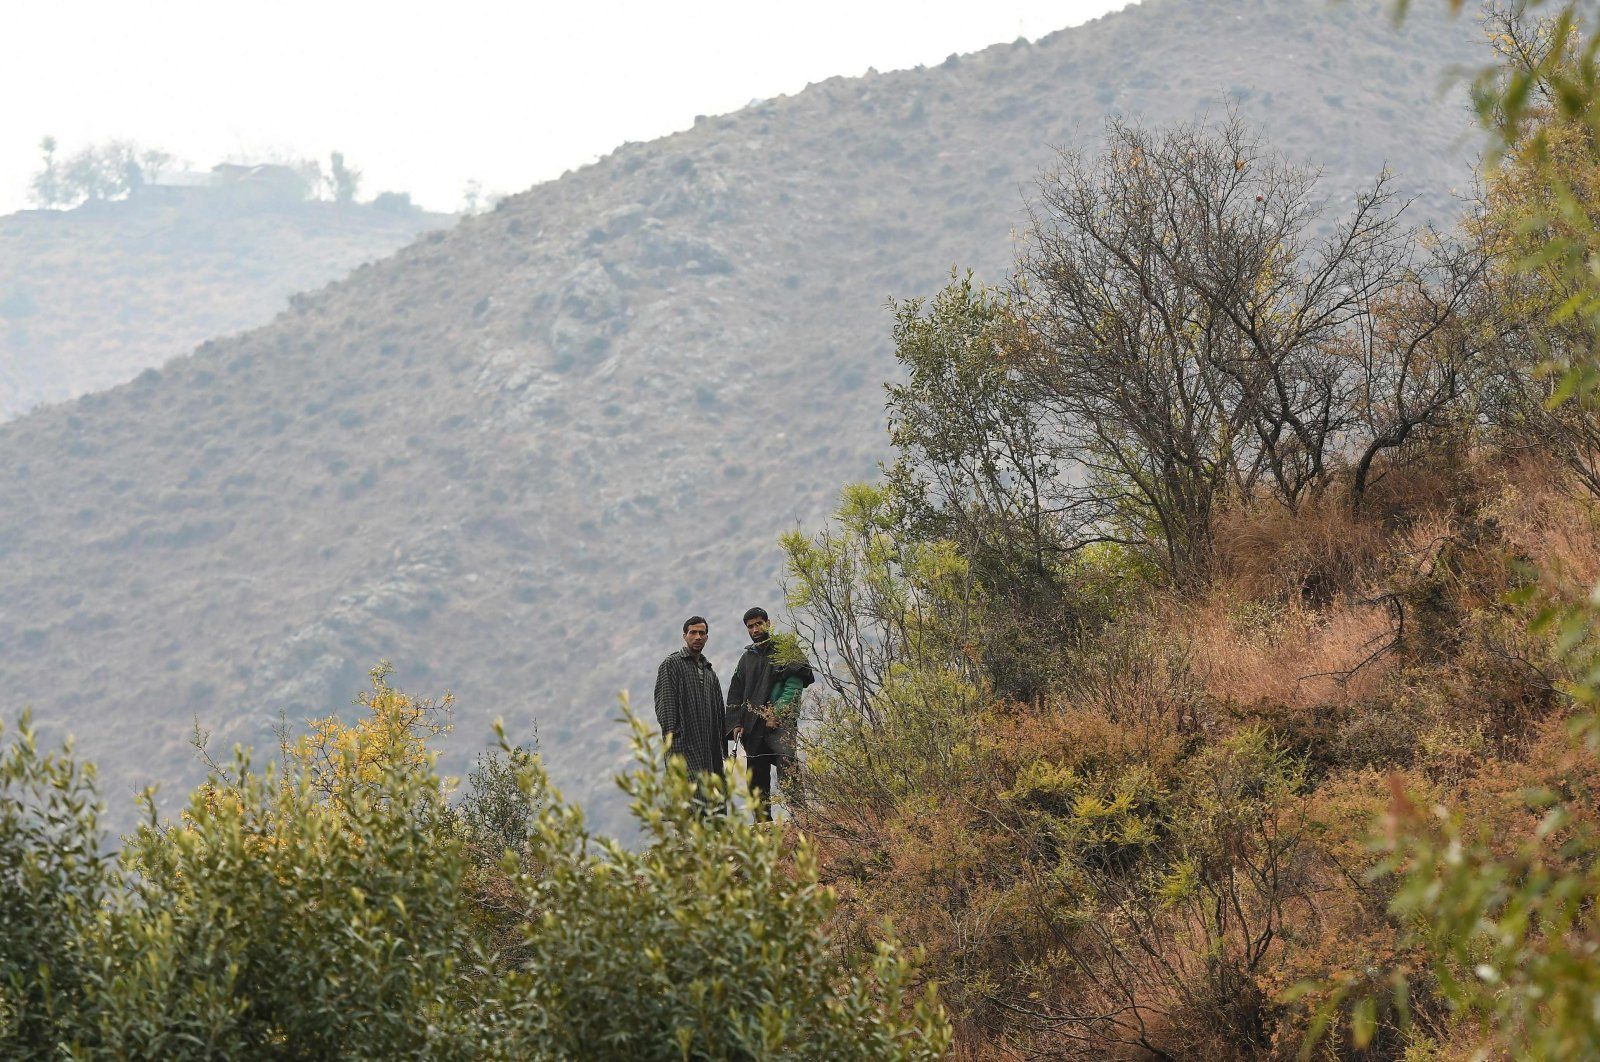 Local residents look out from the top of a hill at Kamal Kote village near the Line of Control (LOC), the de facto border between Pakistan and India, at Uri some 135 kilometers (22 miles) east of Srinagar on Nov. 14, 2020. (AFP Photo)